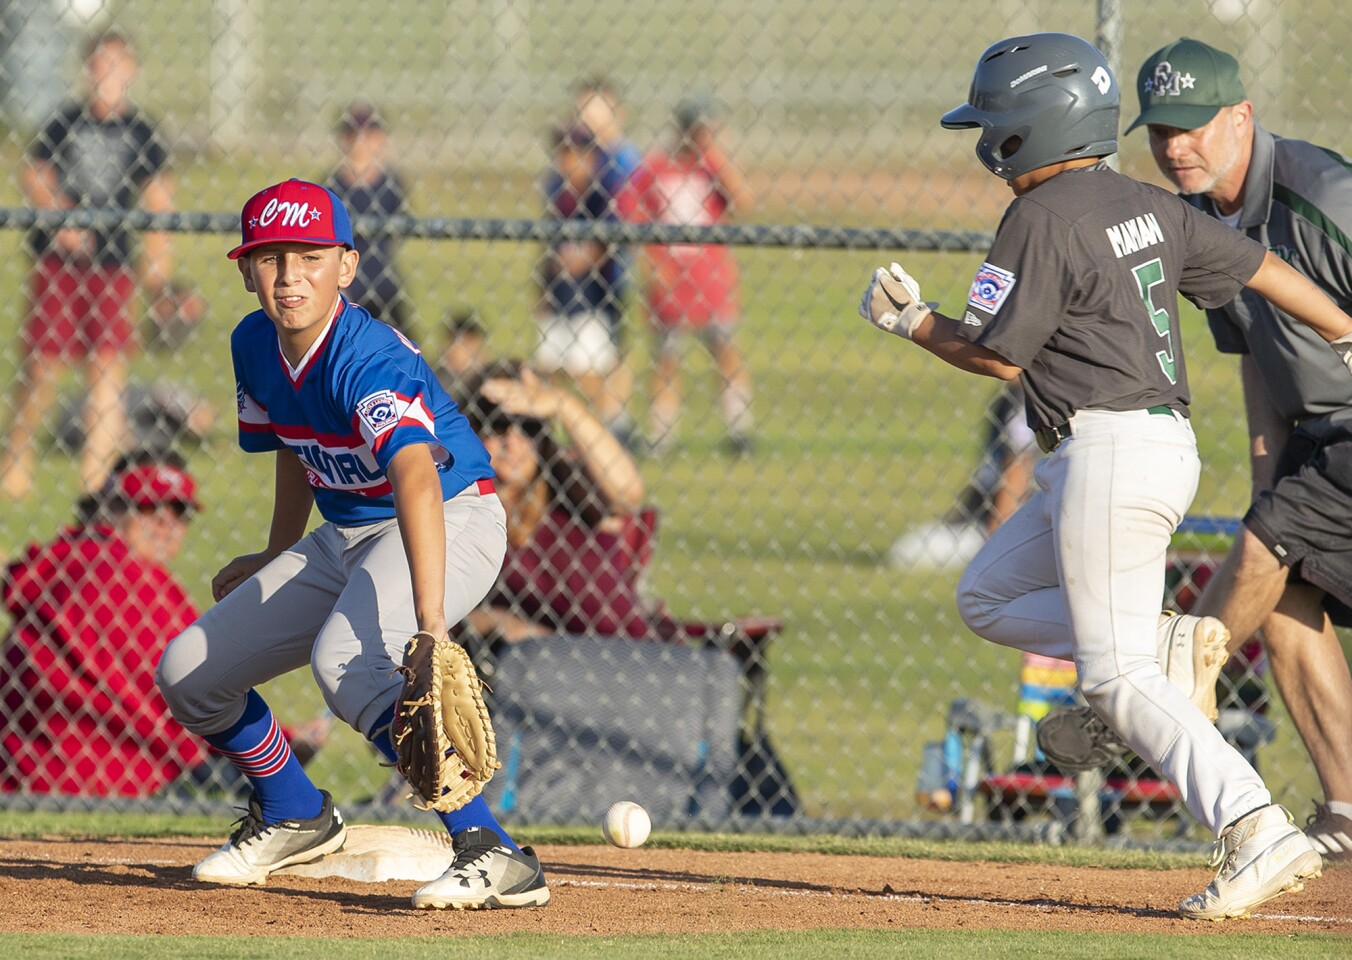 Photo Gallery: Costa Mesa Little League Mayor's Cup Game 1